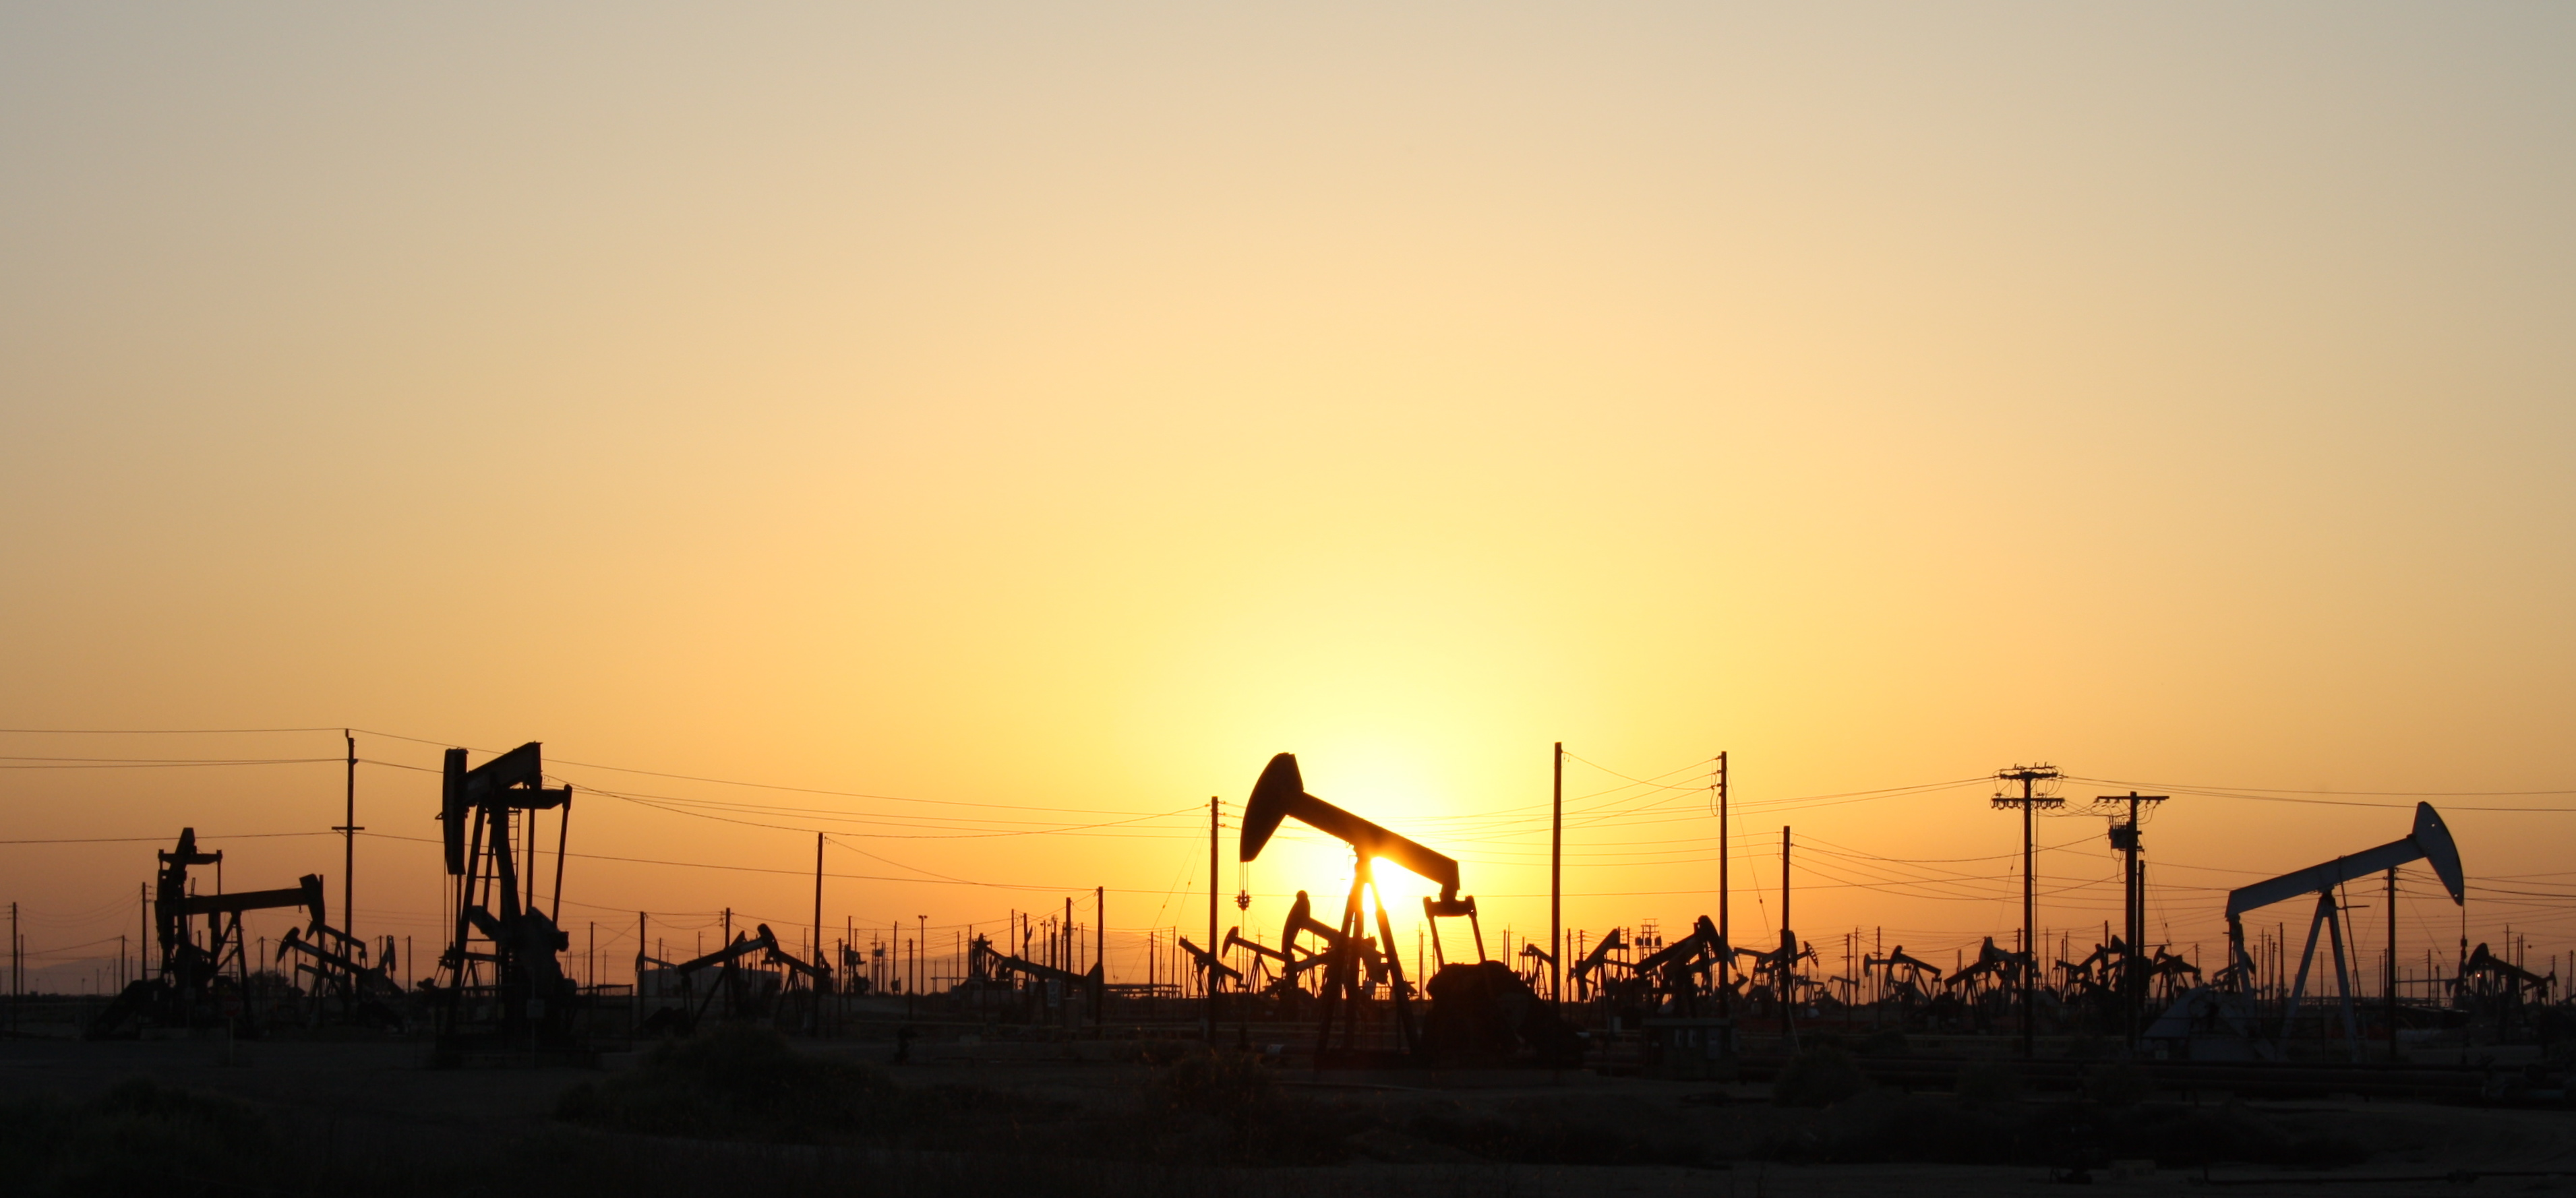 macro environment in the oil industry Executive summary oil industry is facing difficult times because of pressure from all around this examination of macro environment of oil industry will help to understand what the present challenges in oil industry are.